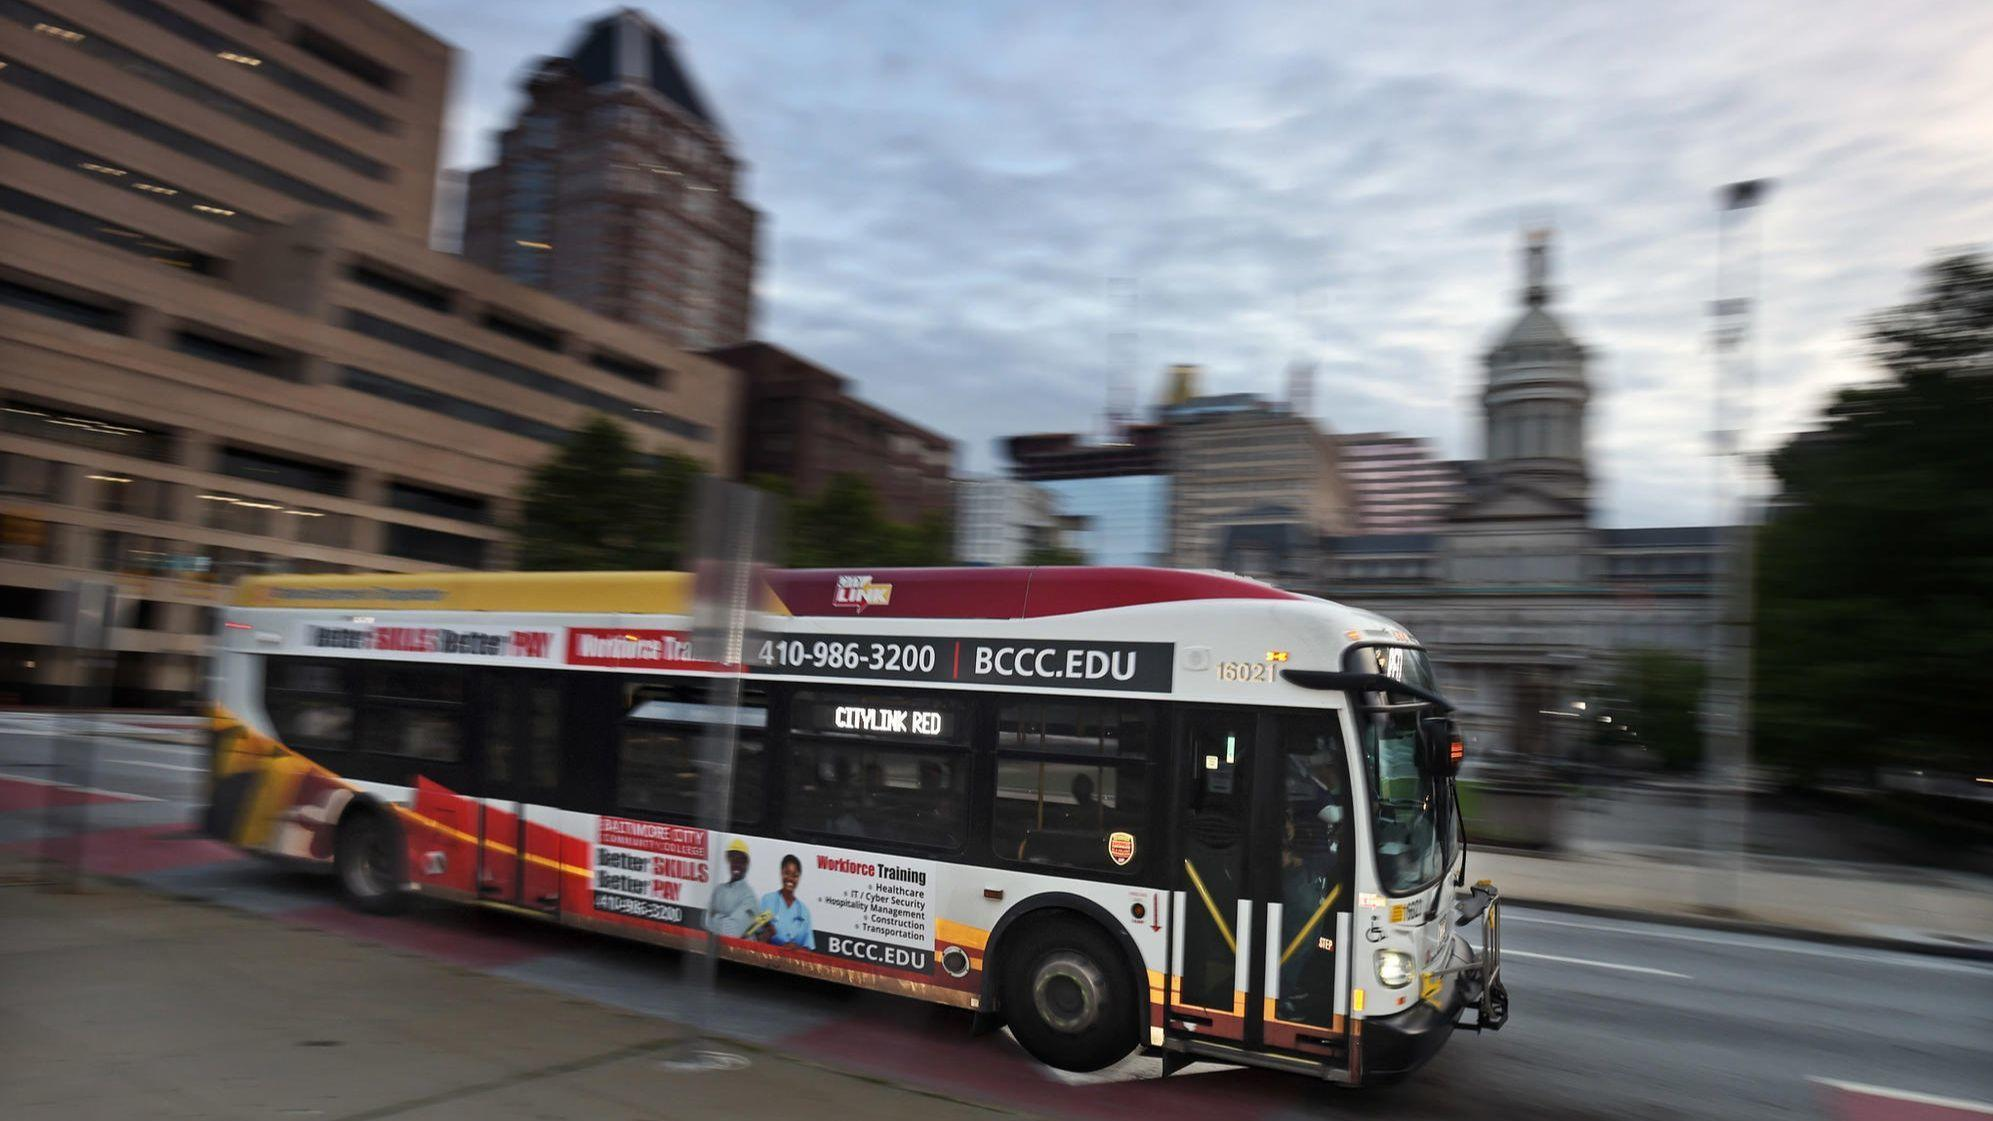 With Gps Installed On Baltimore Buses Mta Debuts Real